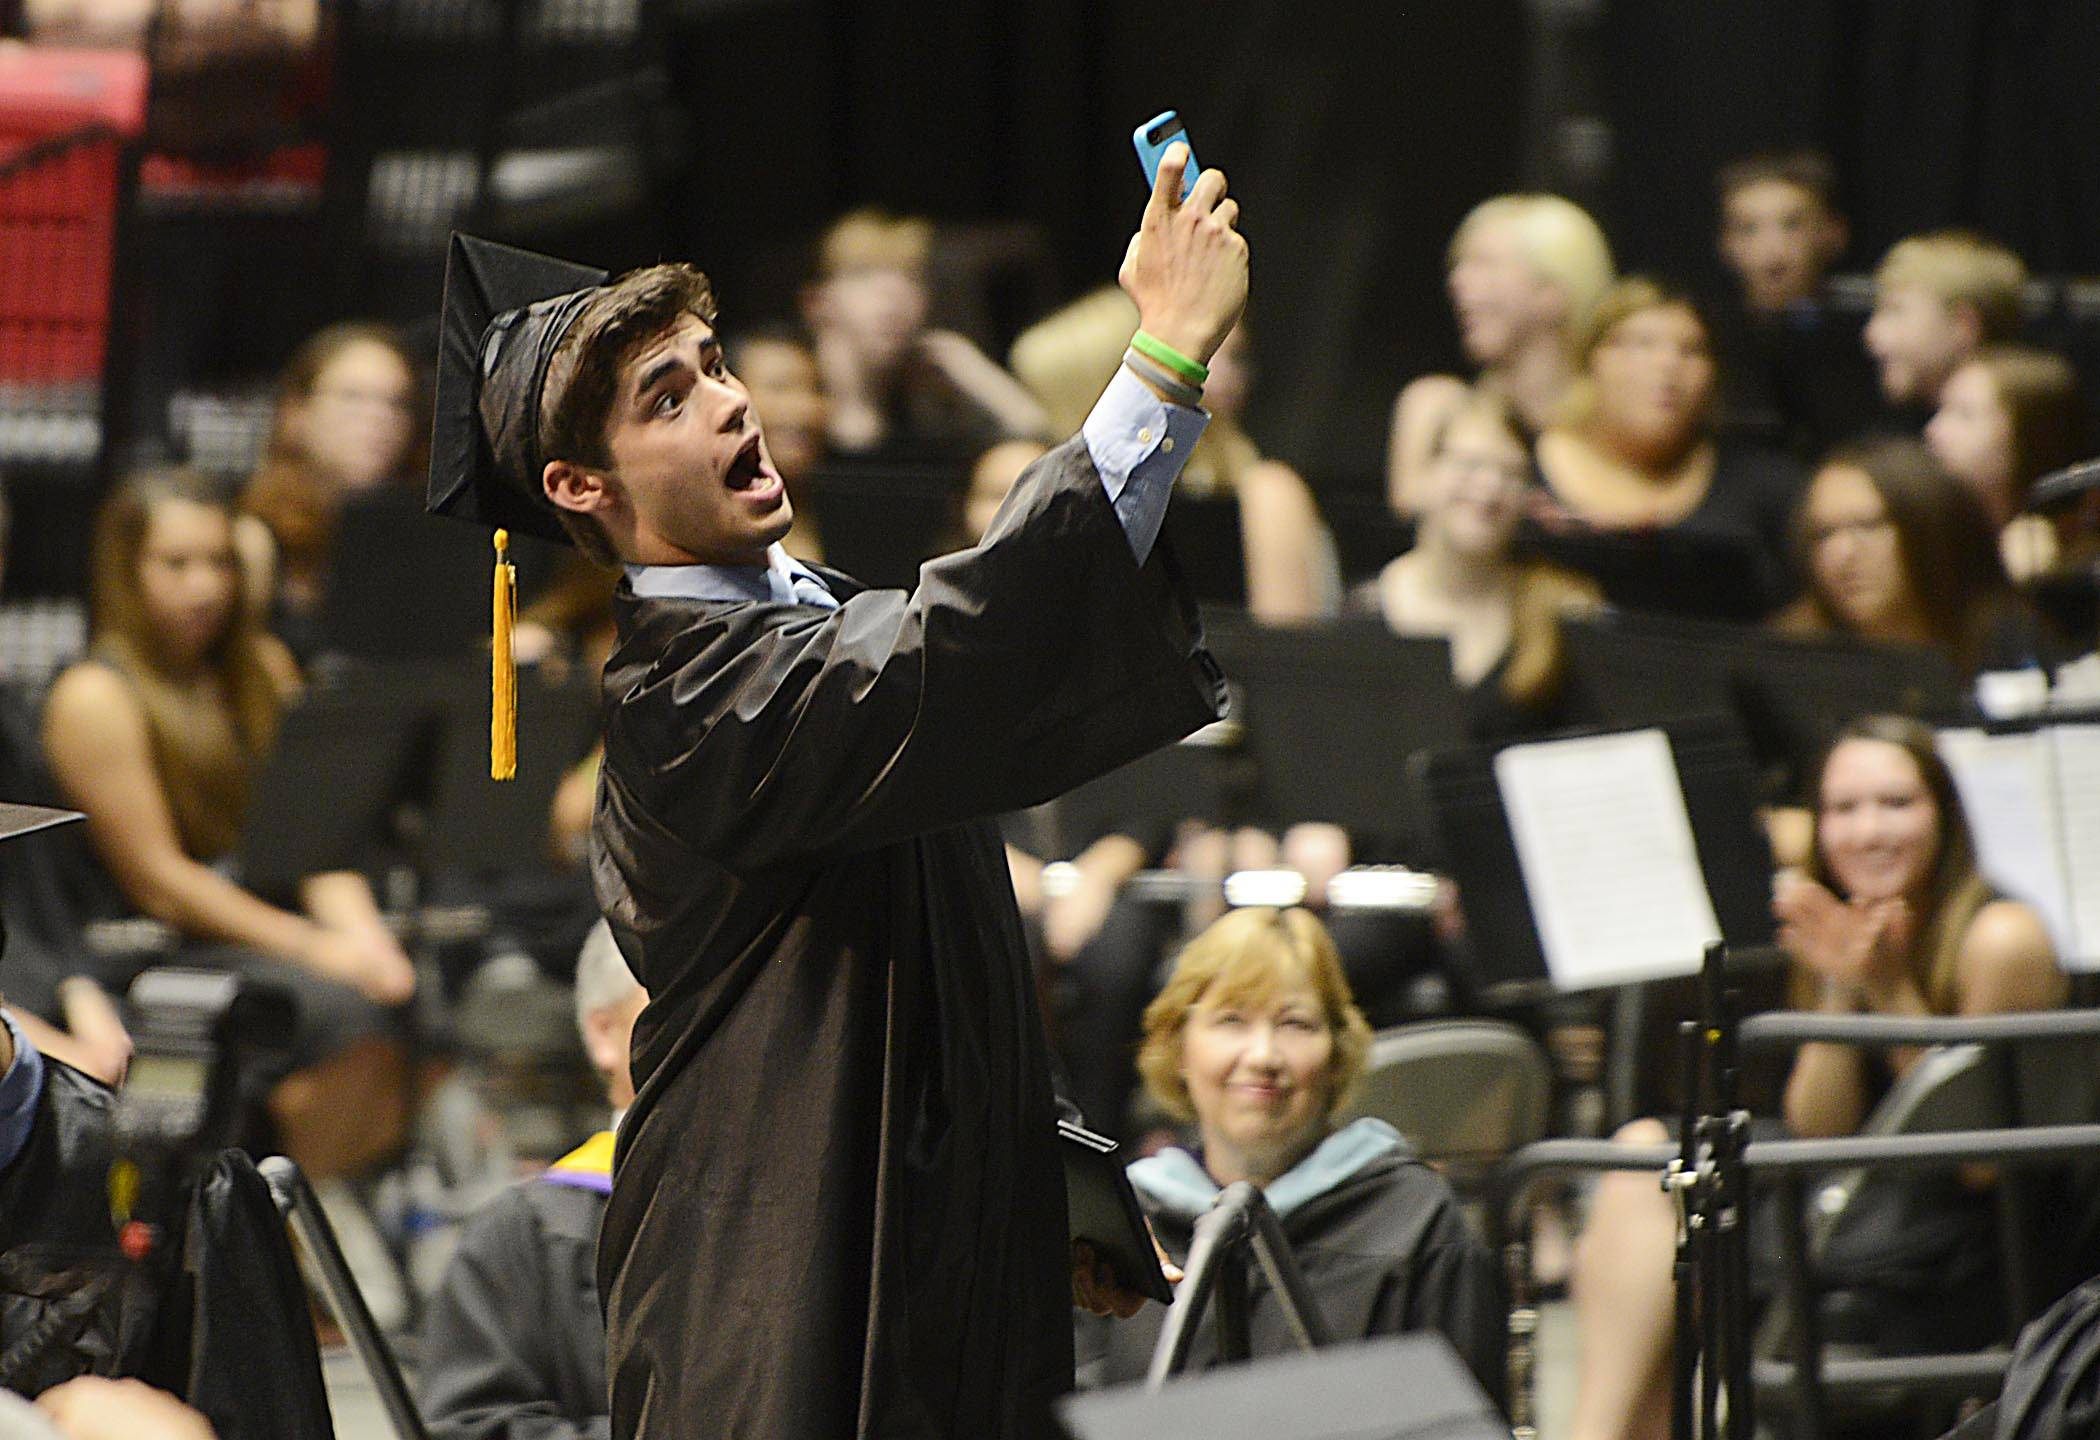 Graduate Dylan Snodgrass pauses for a selfie onstage after receiving his diploma at the Kaneland High School 2014 commencement exercises Sunday in Dekalb.